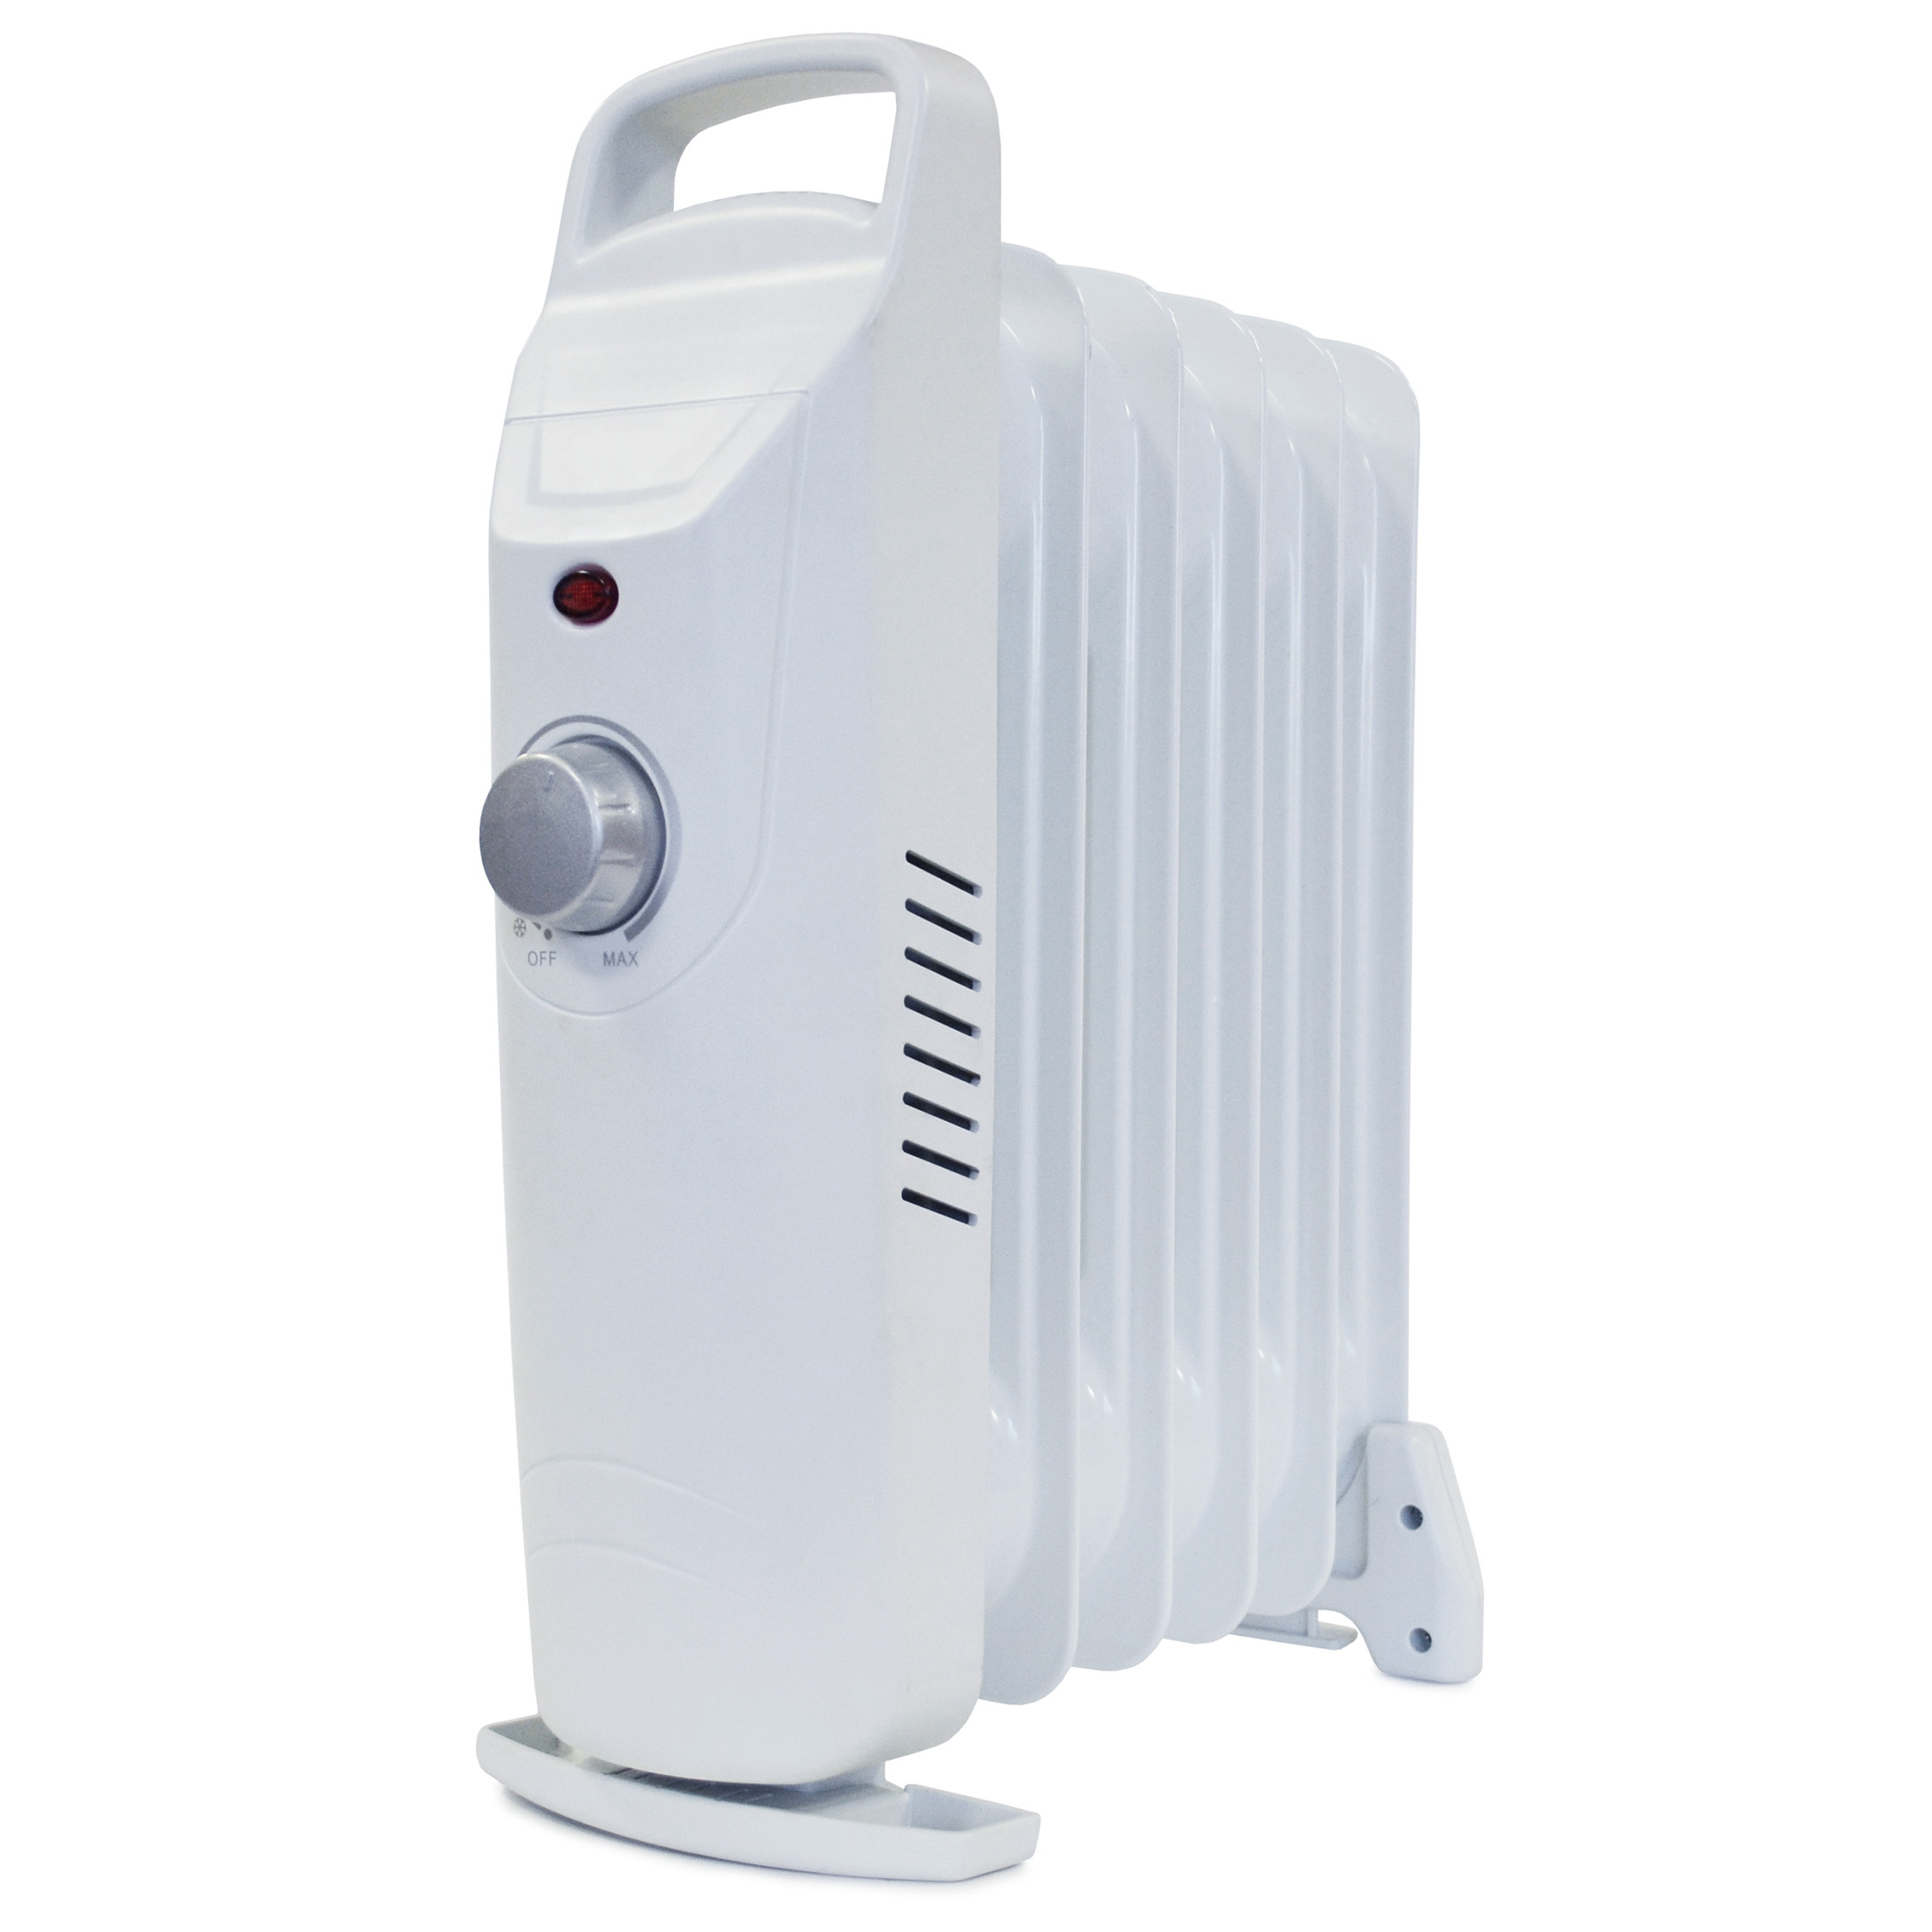 5 Star Facilities Mini 7 Fin Oil Filled Radiator for Up to 5m.sq room 800W